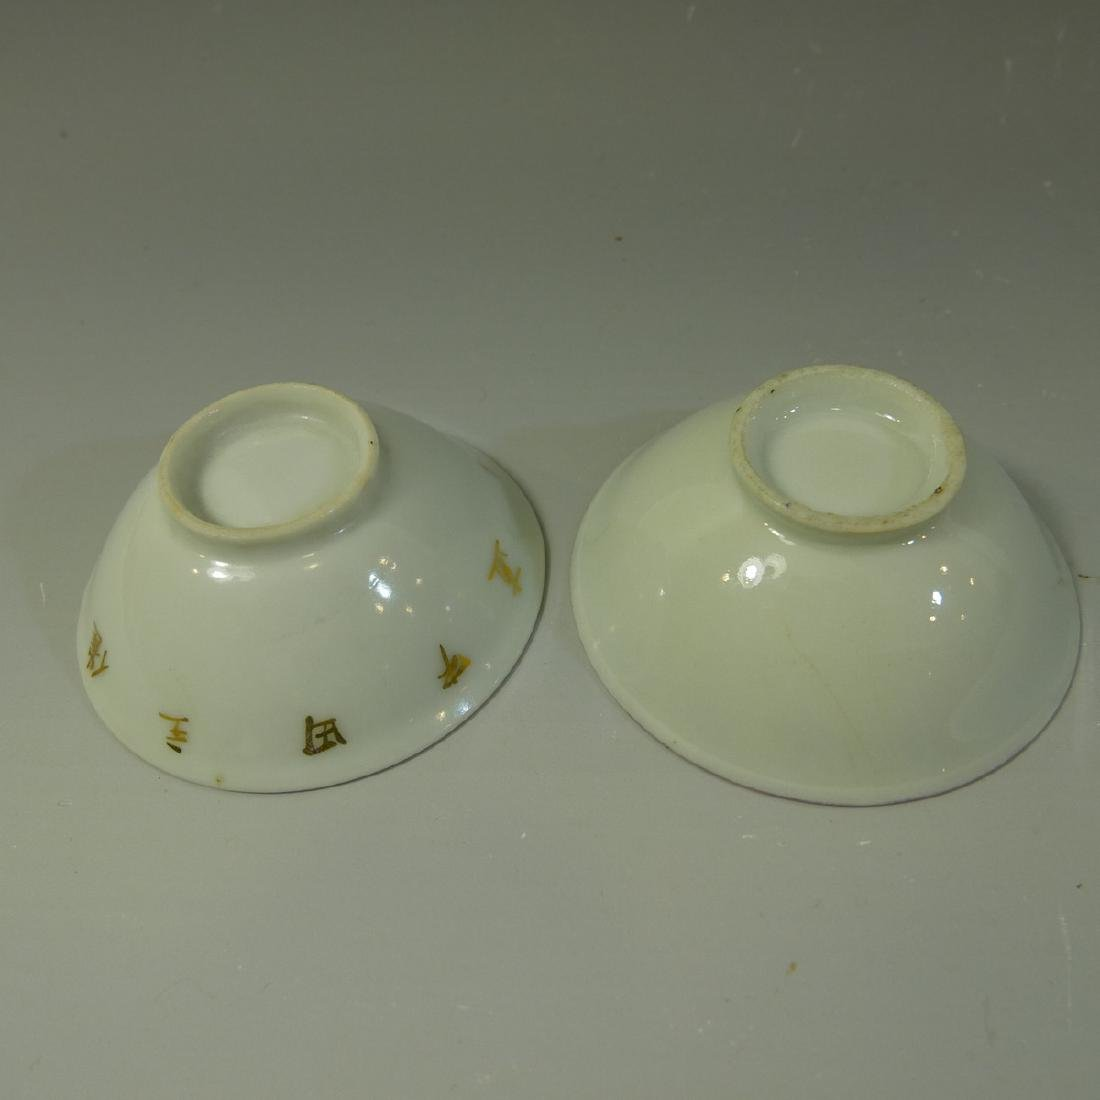 TWO ANTIQUE JAPANESE PORCELAIN CUPS COMMEMORATING - 4